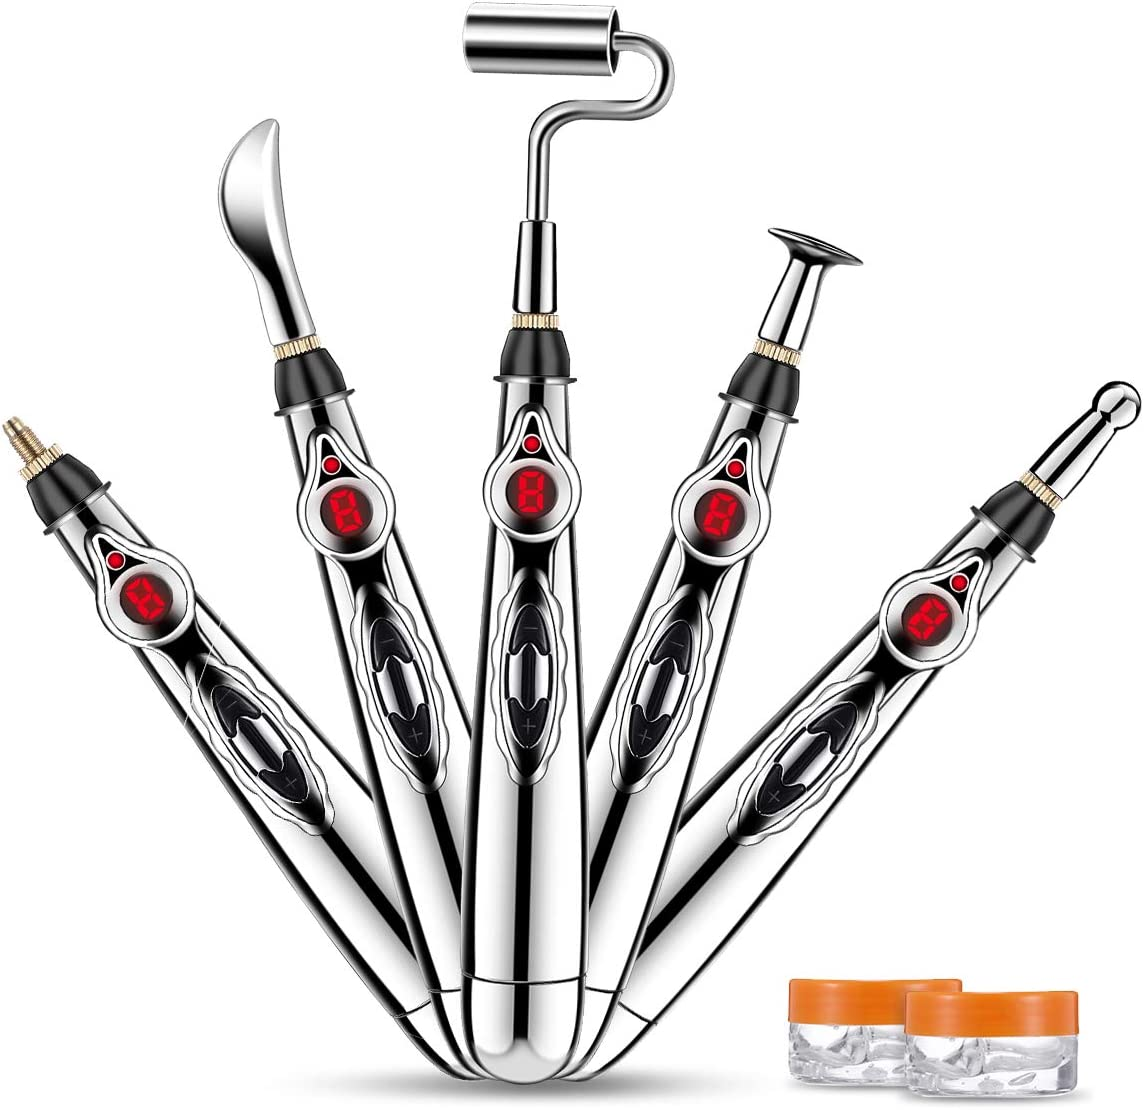 Acupuncture Pen,CAMTOA Electronic Acupuncture Pen,Meridian Acupuncture Pen with 5 Massage Energy Pain Therapy